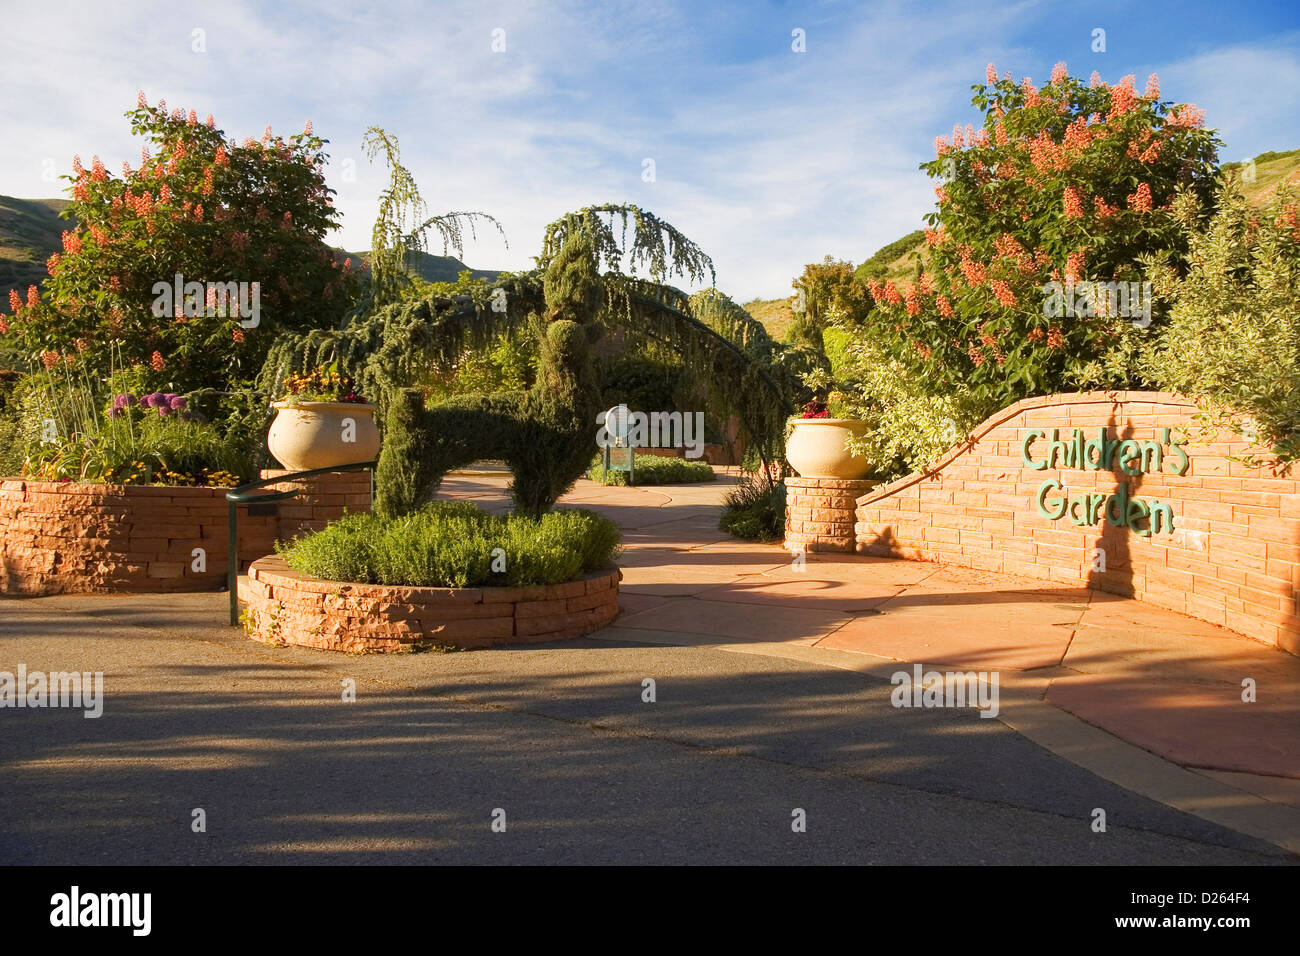 Red Butte Garden Salt Lake City Stock Photos & Red Butte Garden Salt ...